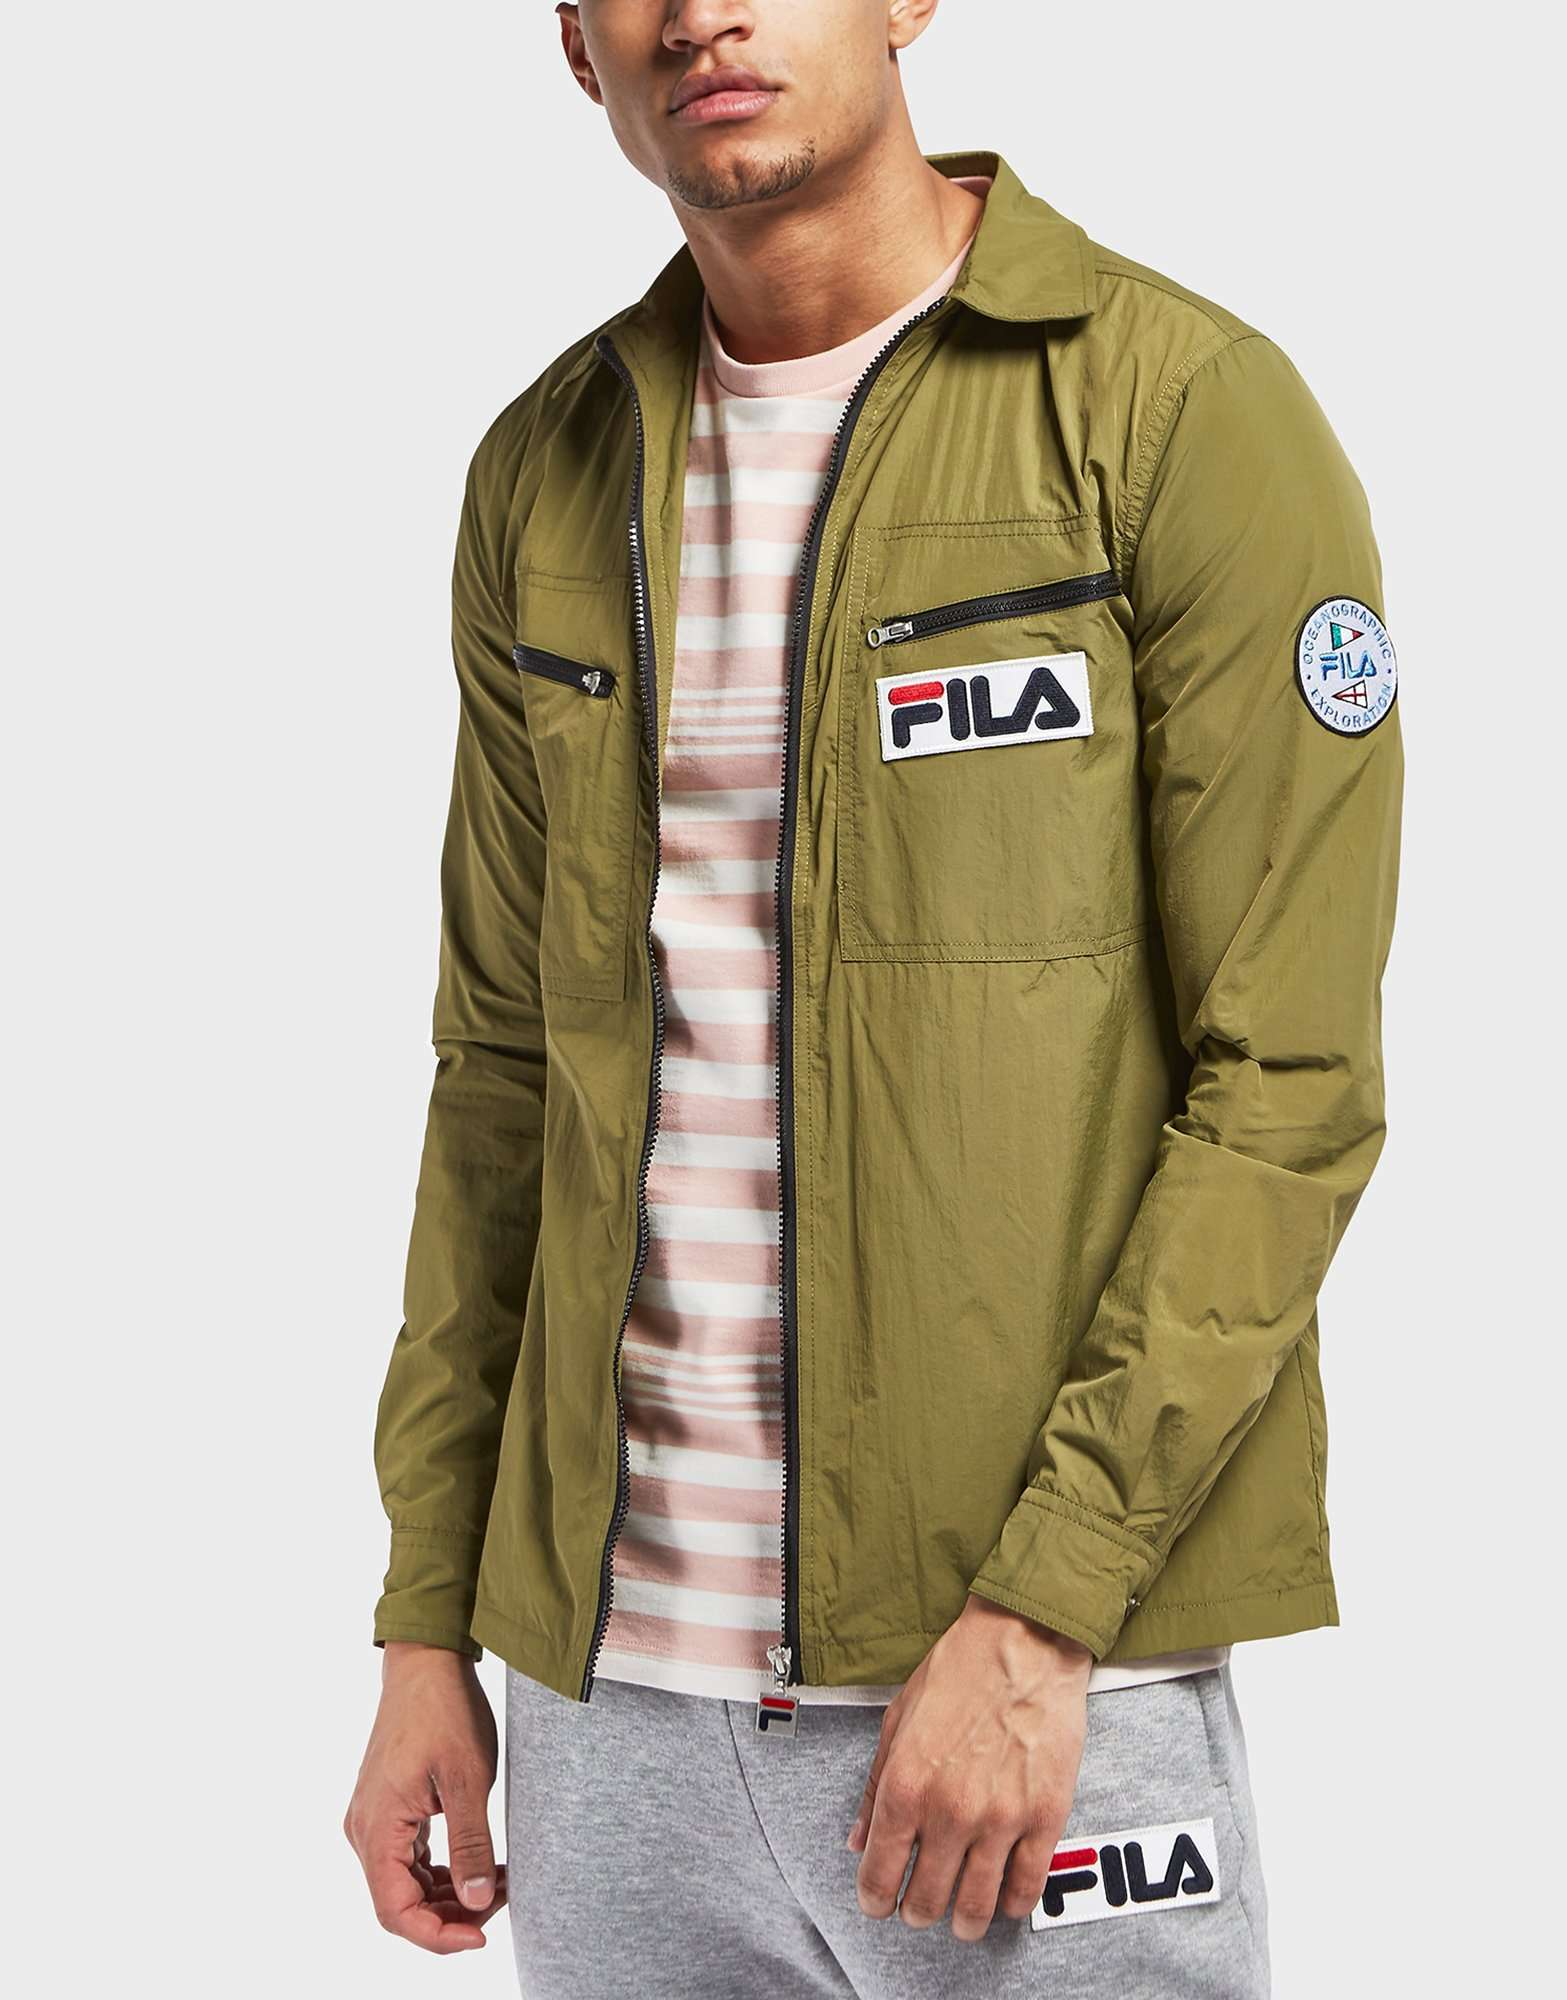 Fila Condor Long Sleeve Overshirt